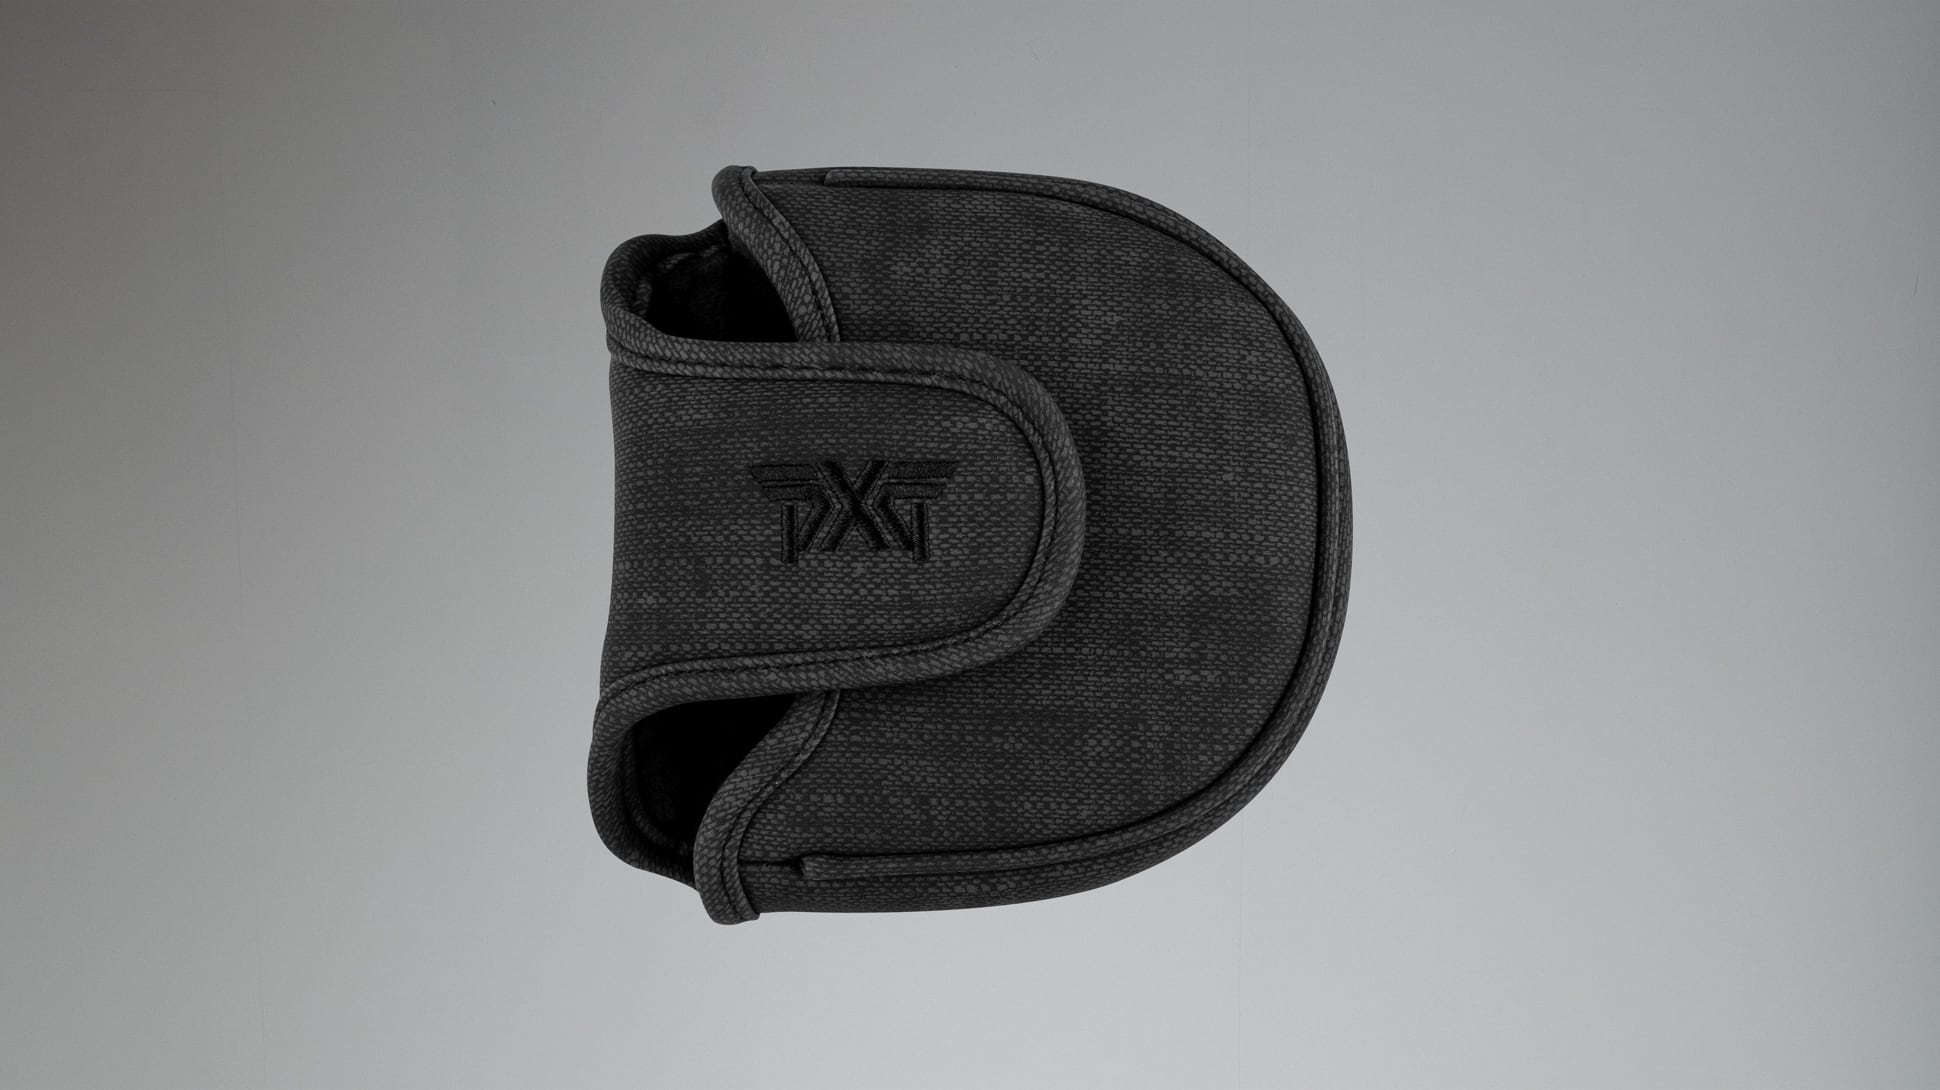 Deluxe Performance Mallet Putter Headcover Image 5